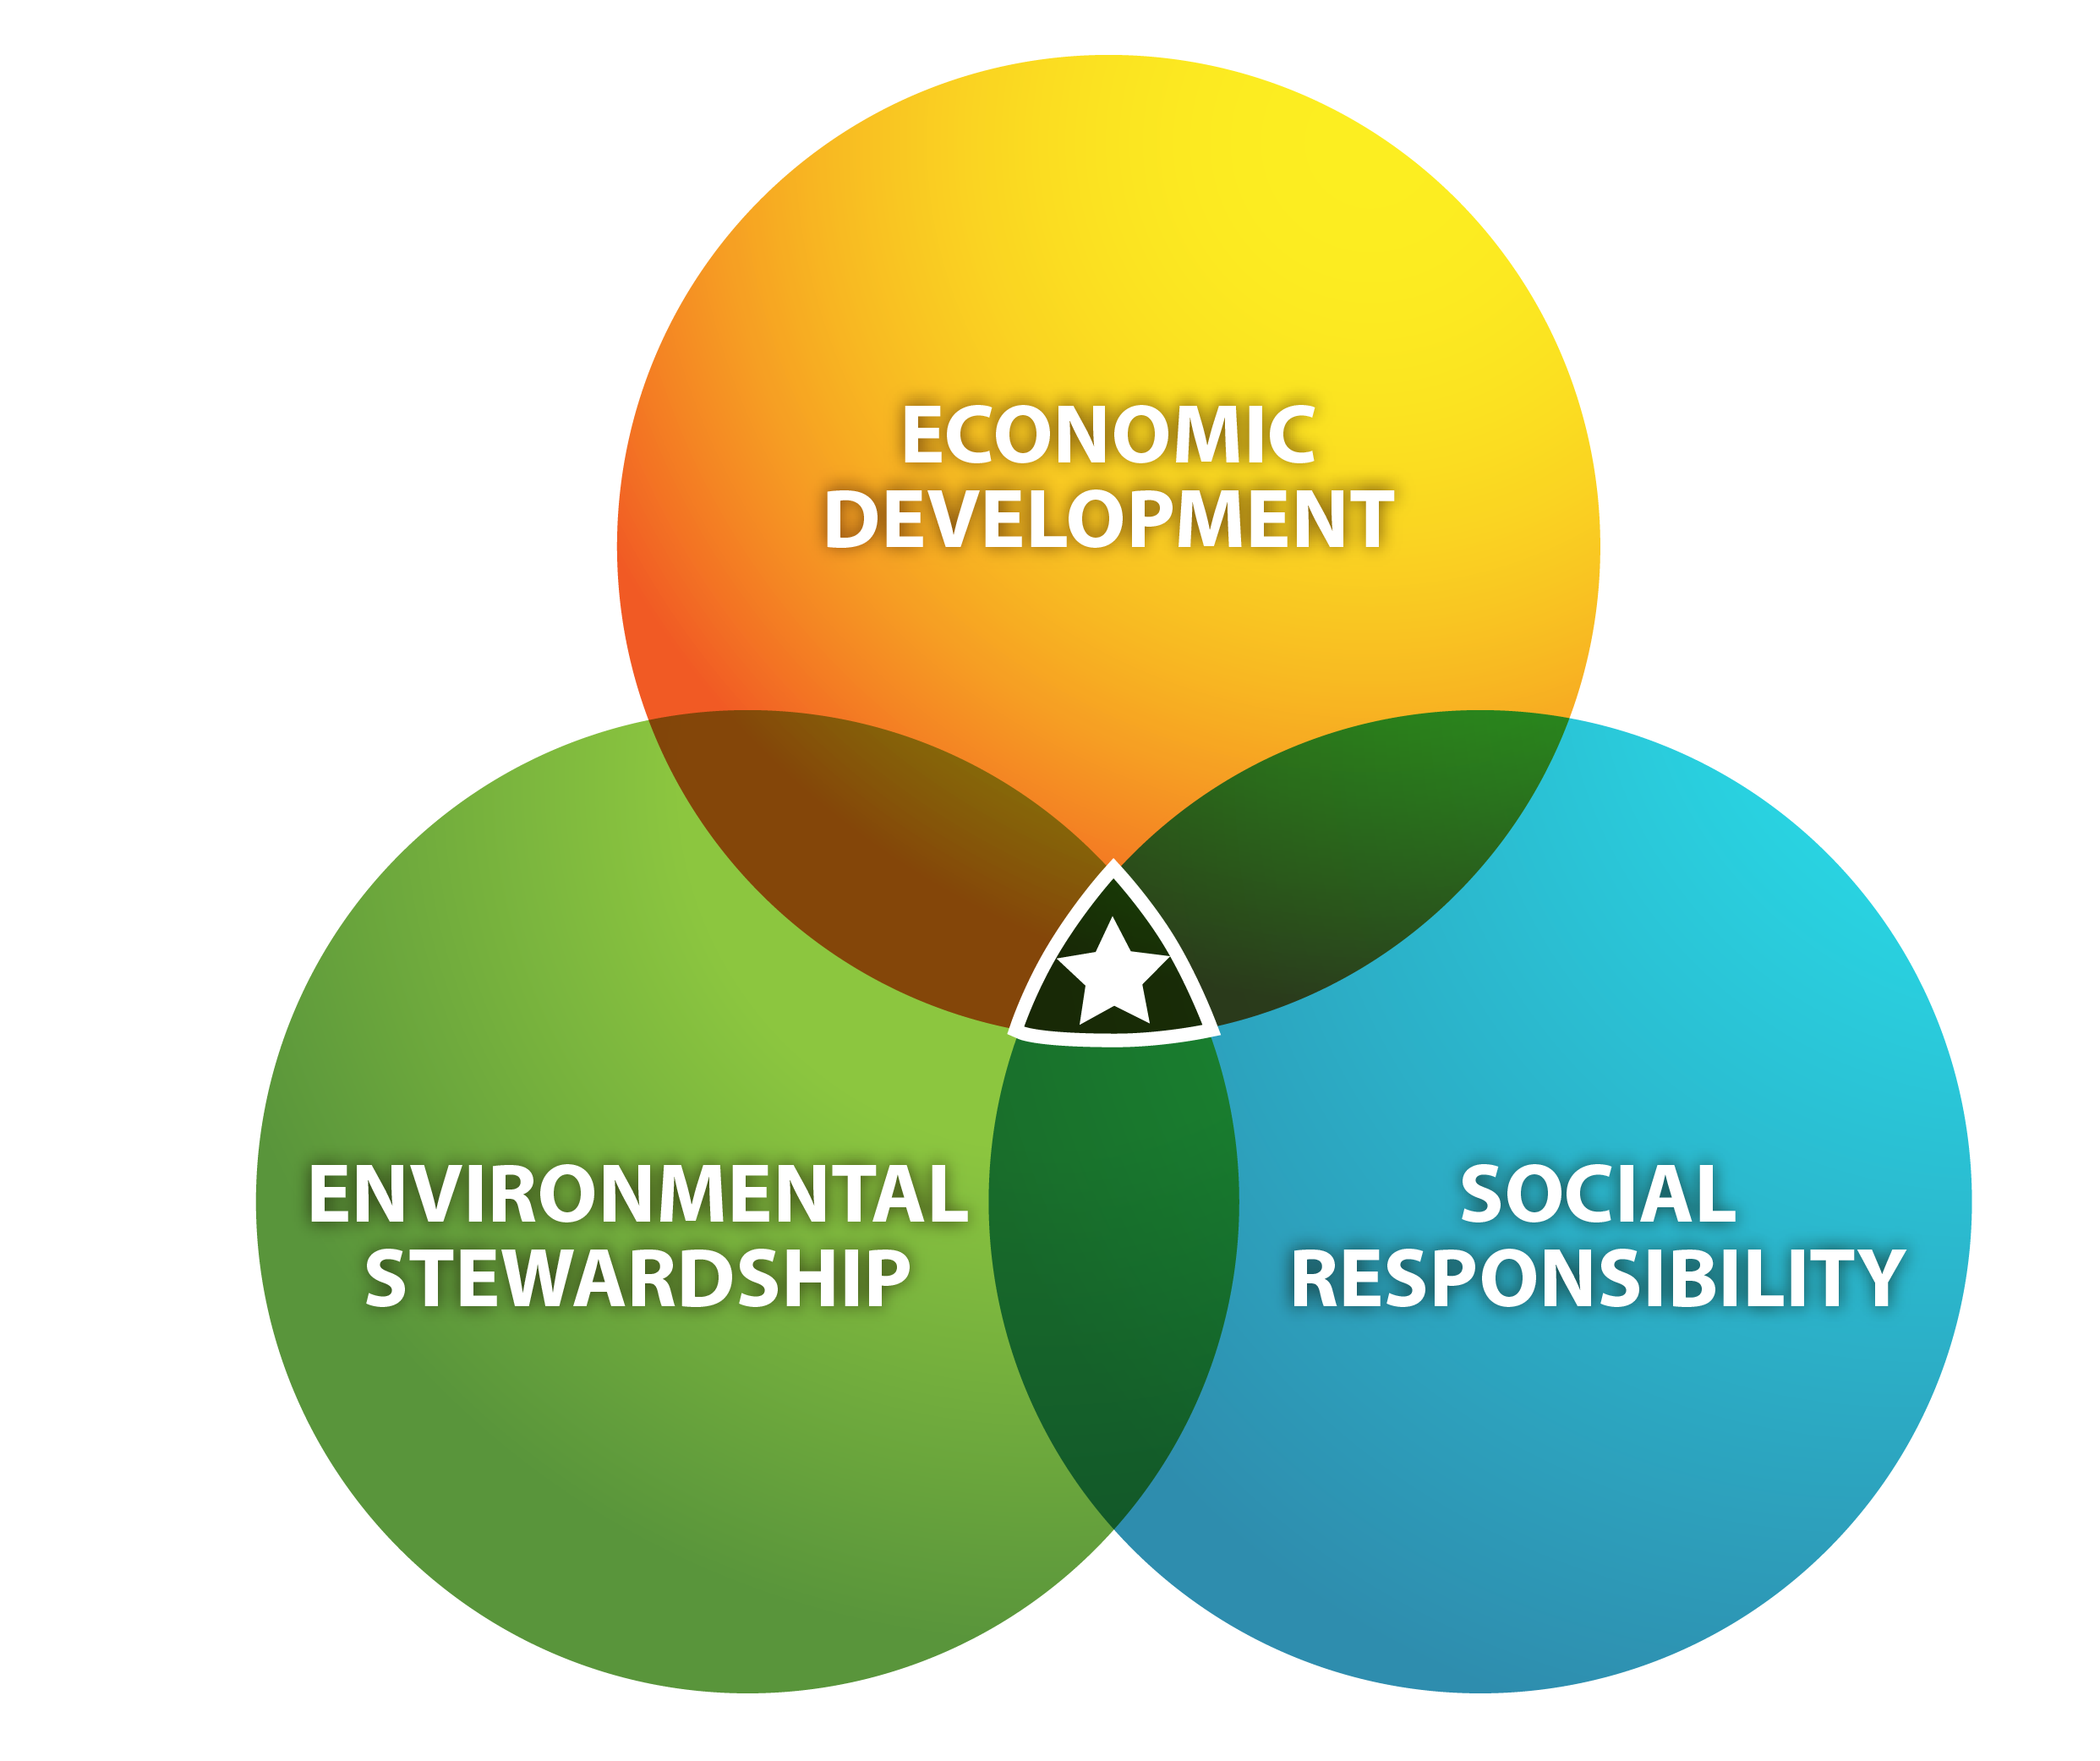 sustainability and the triple bottom line It is our argument in this chapter that the triple bottom line is a facile concept which has been used to imply that sustainability and sustainable development are simple targets to achieve we have argued elsewhere (see for example aras & crowther, 2008a, 2009b) that the brundtland definition of sustainable development is misleading.